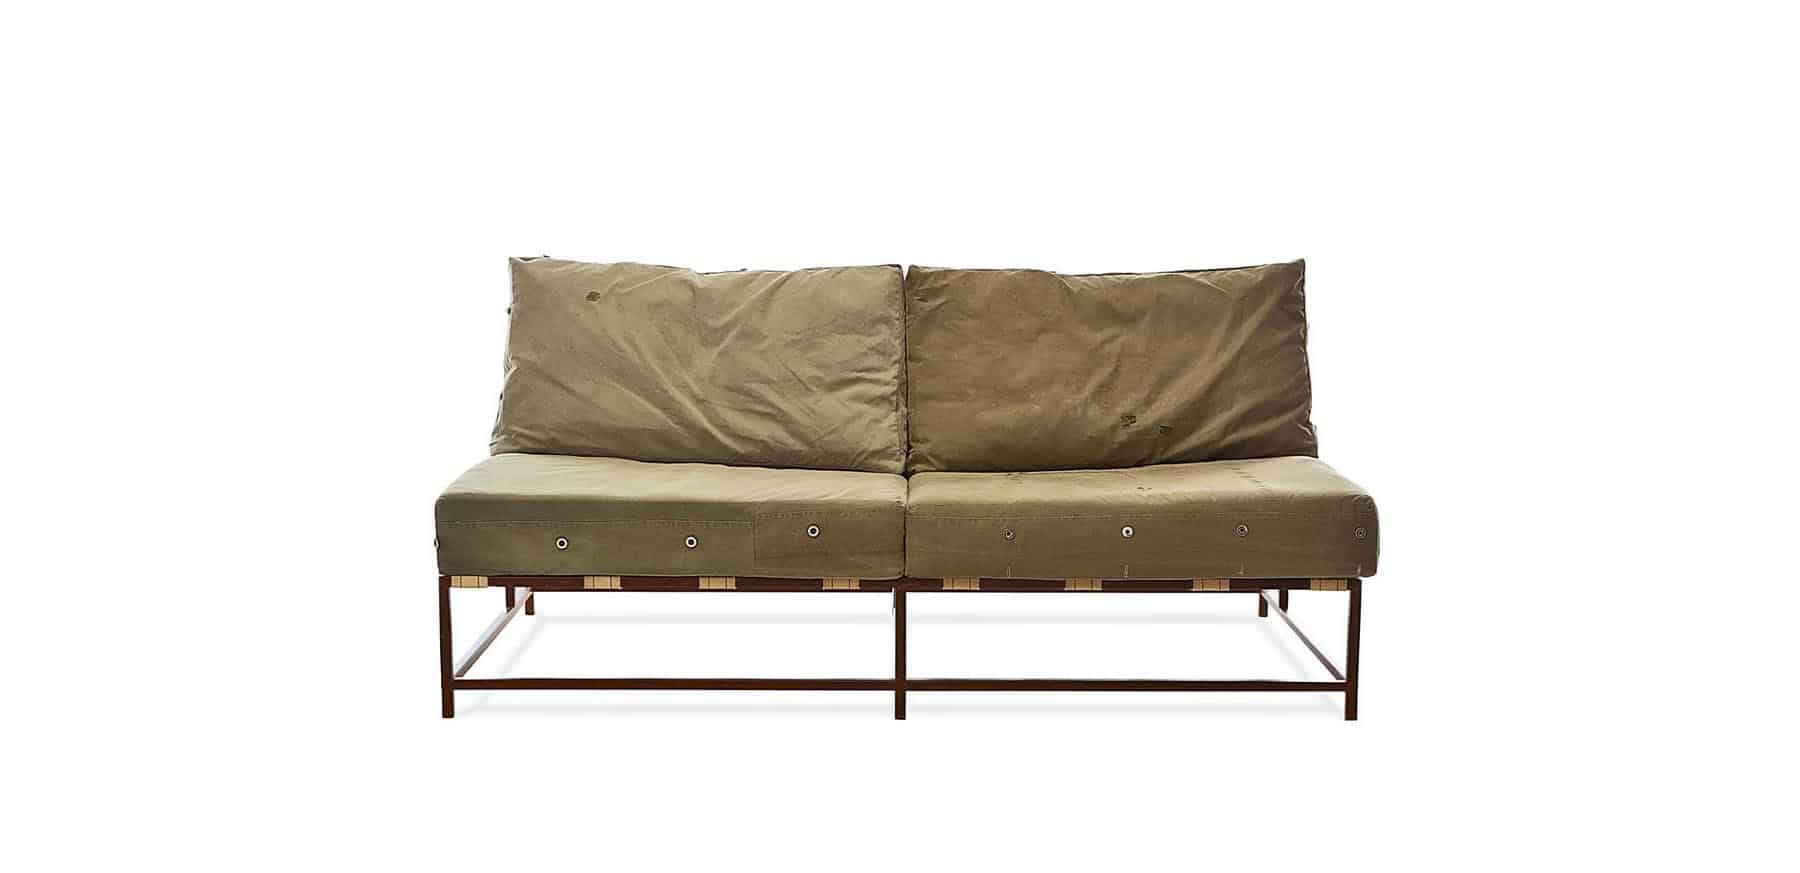 WW2 Military Furniture Made From Re purposed Surplus